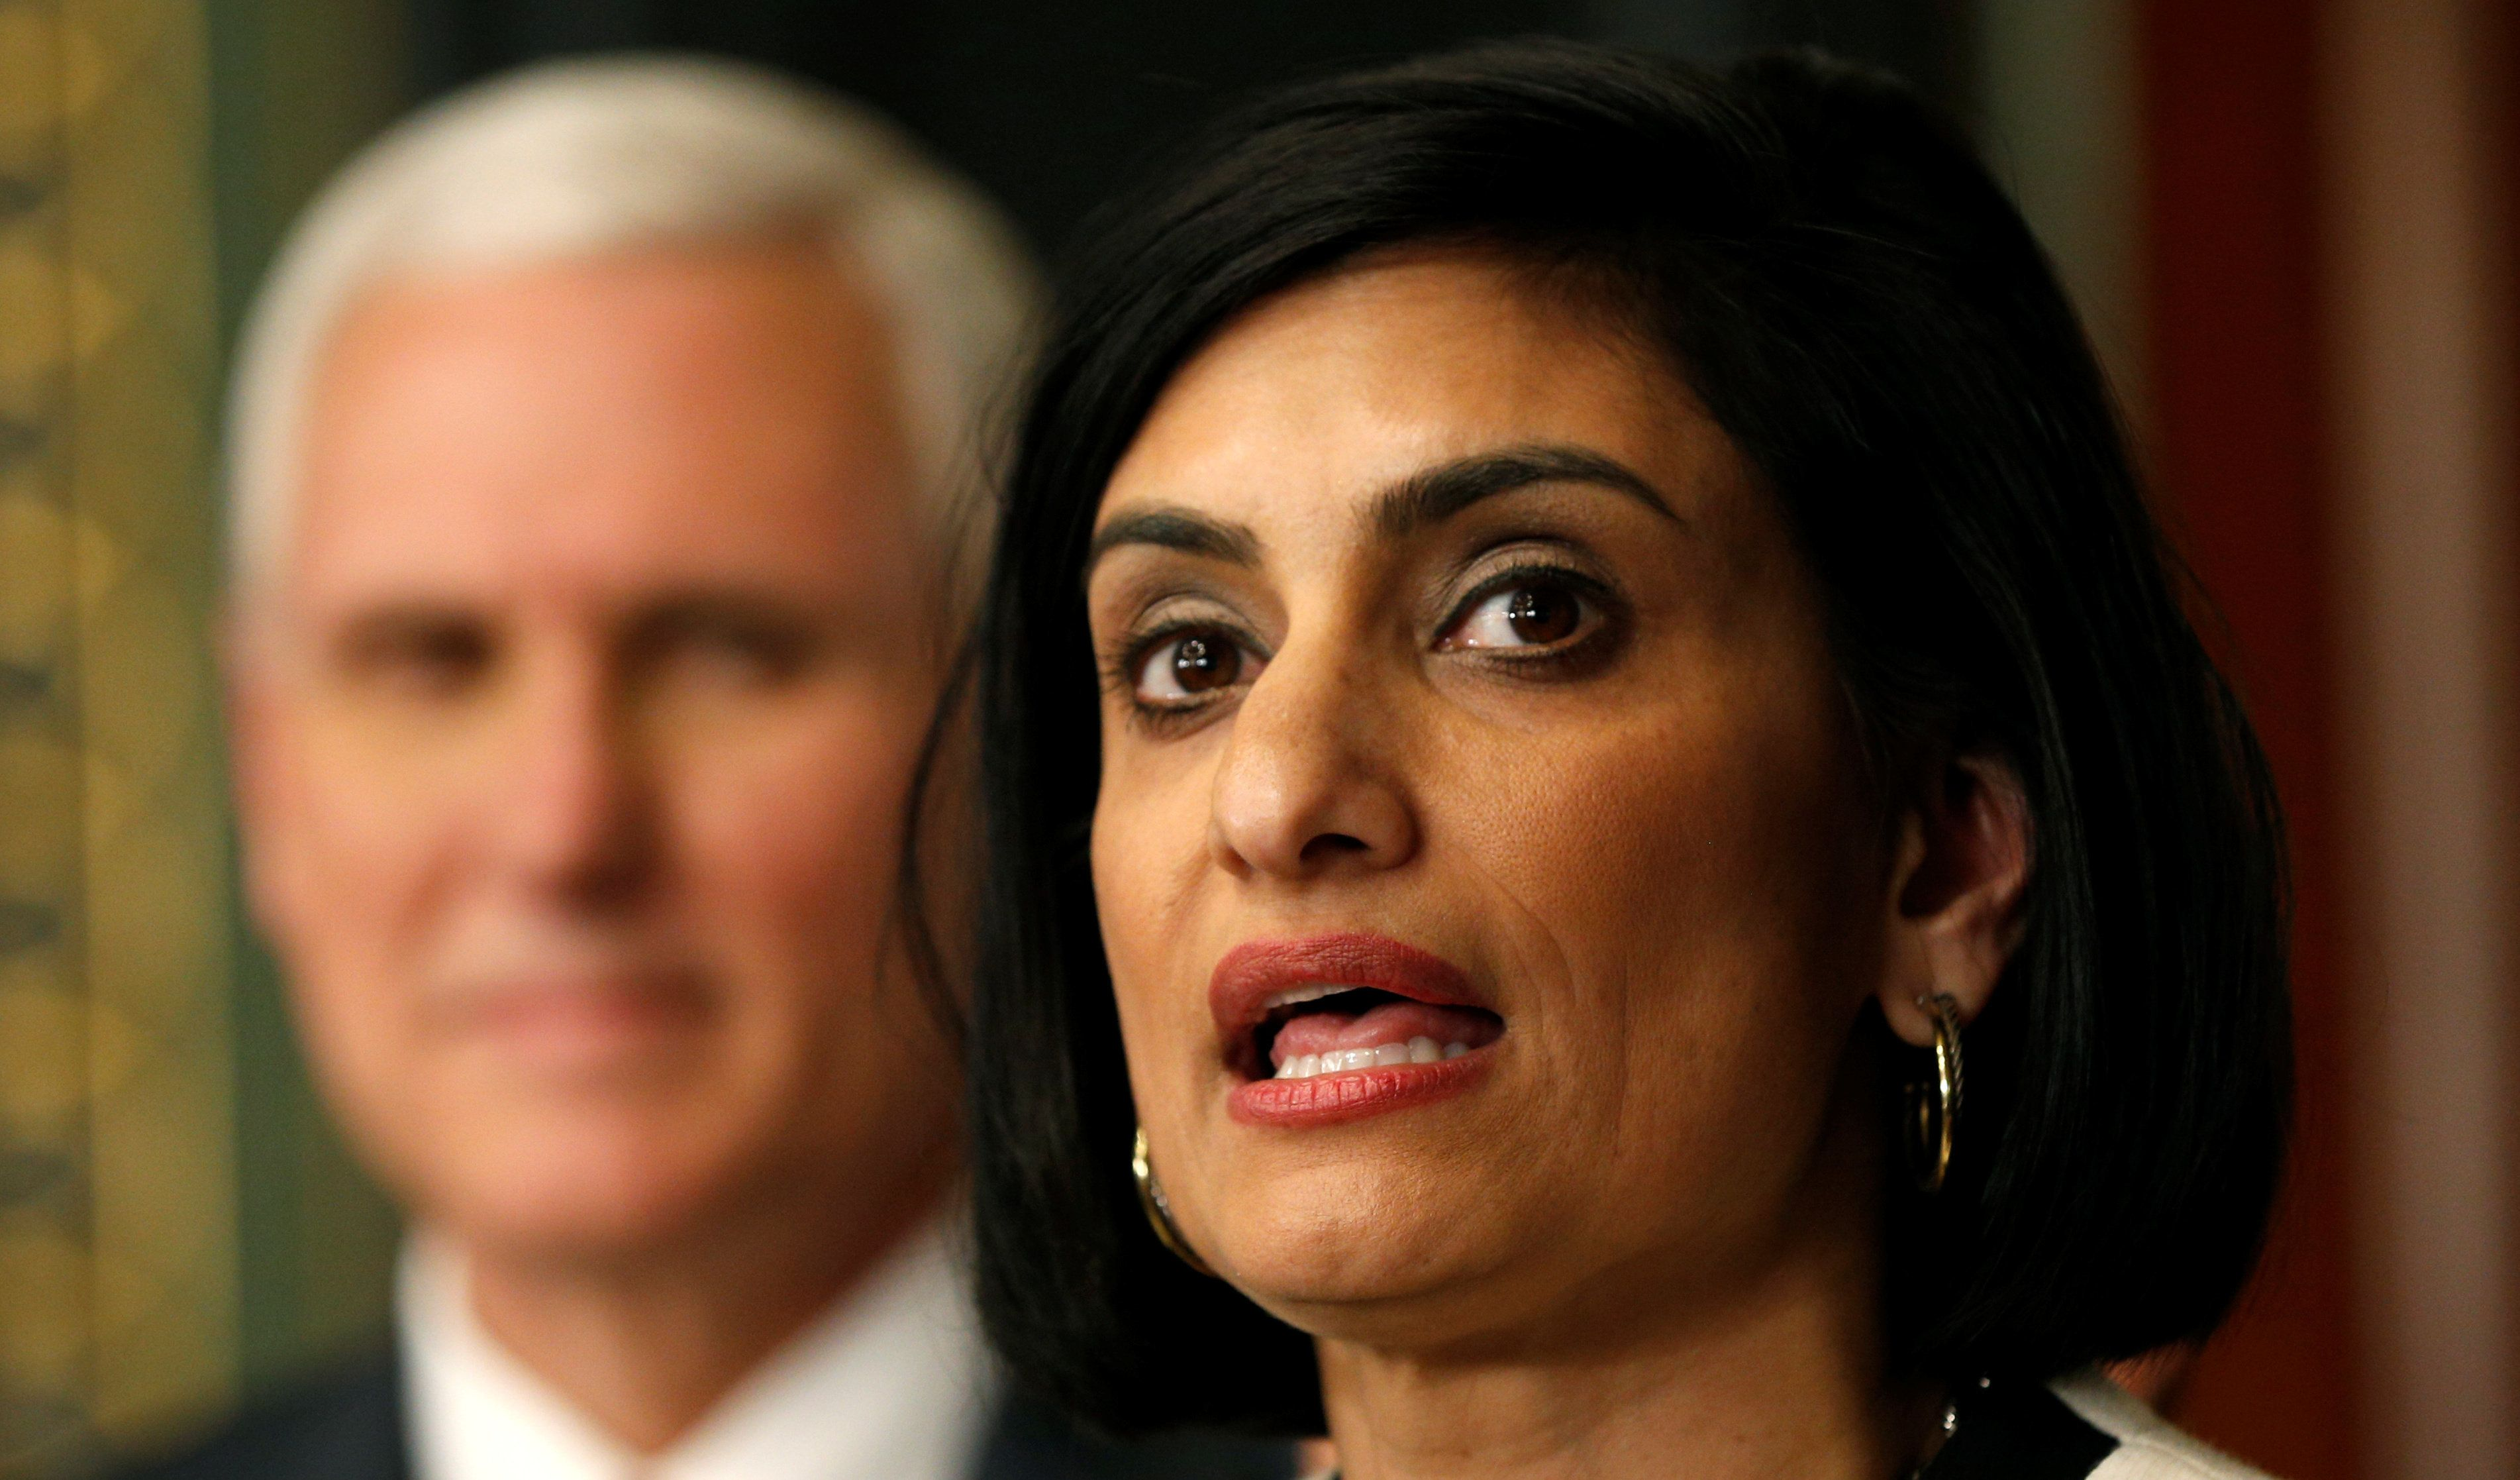 Administrator of the Centers for Medicare and Medicaid Services Seema Verma speaks after being sworn in by U.S. Vice President Mike Pence (L) in Washington, U.S., March 14, 2017.  REUTERS/Kevin Lamarque